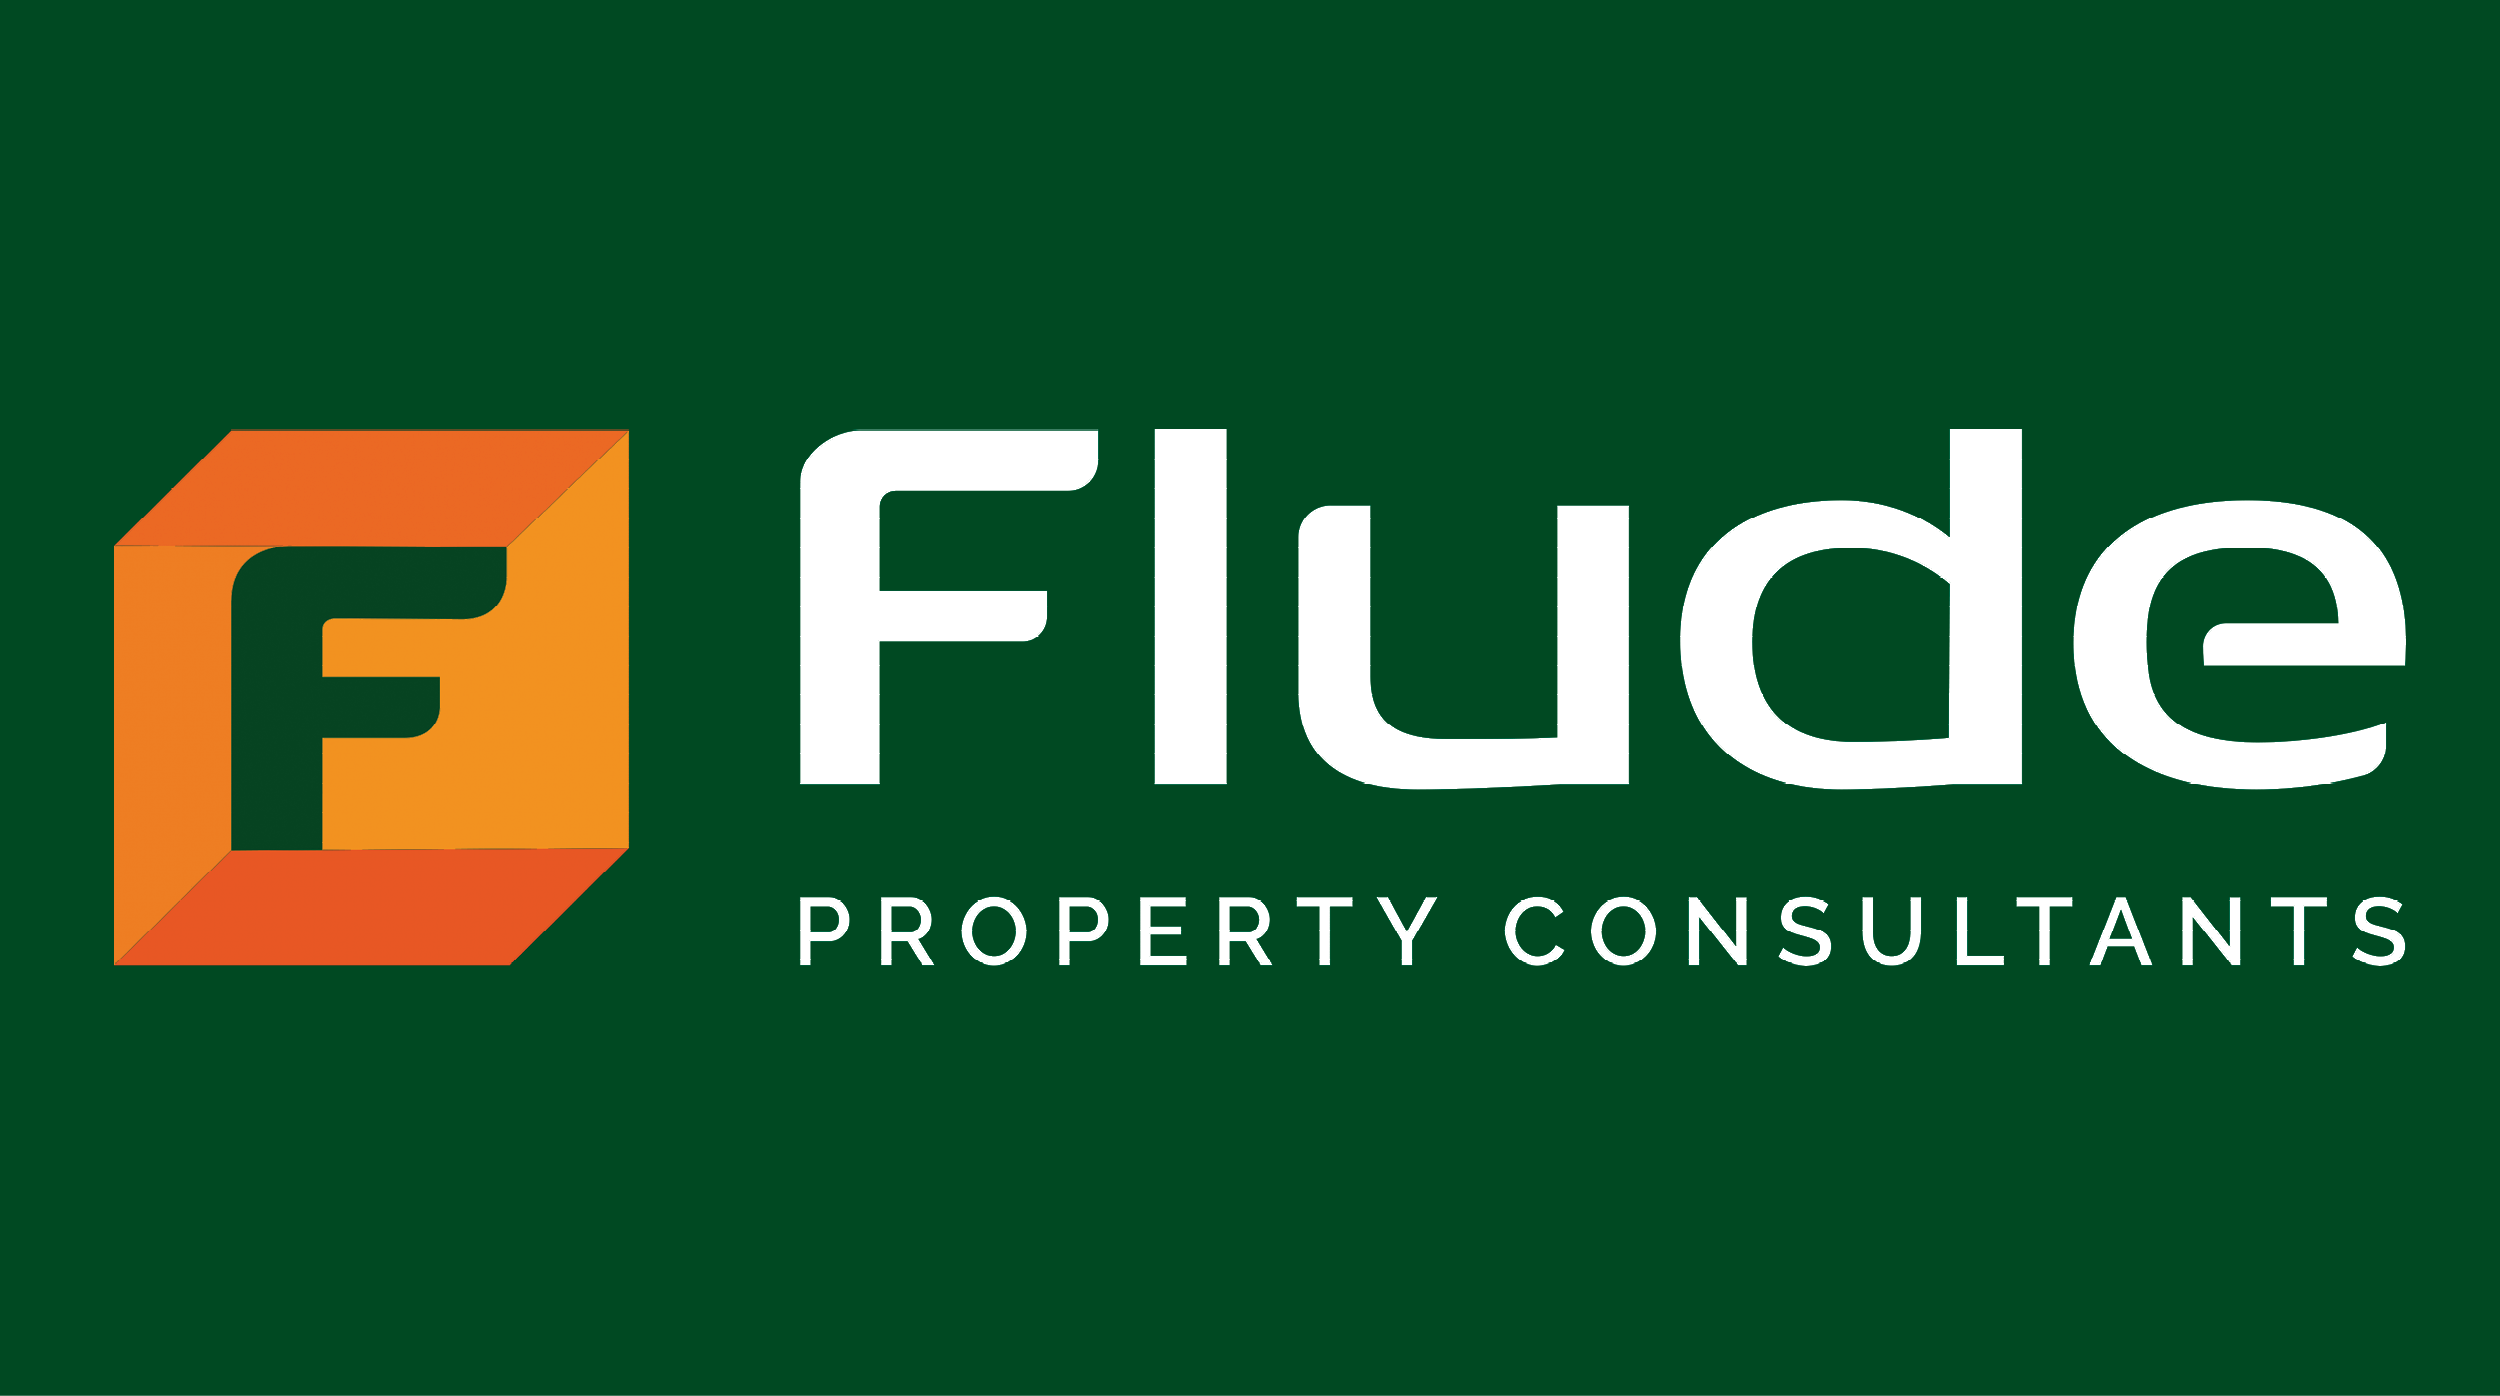 PAI member Flude Commercial to rebrand as Flude Property Consultants